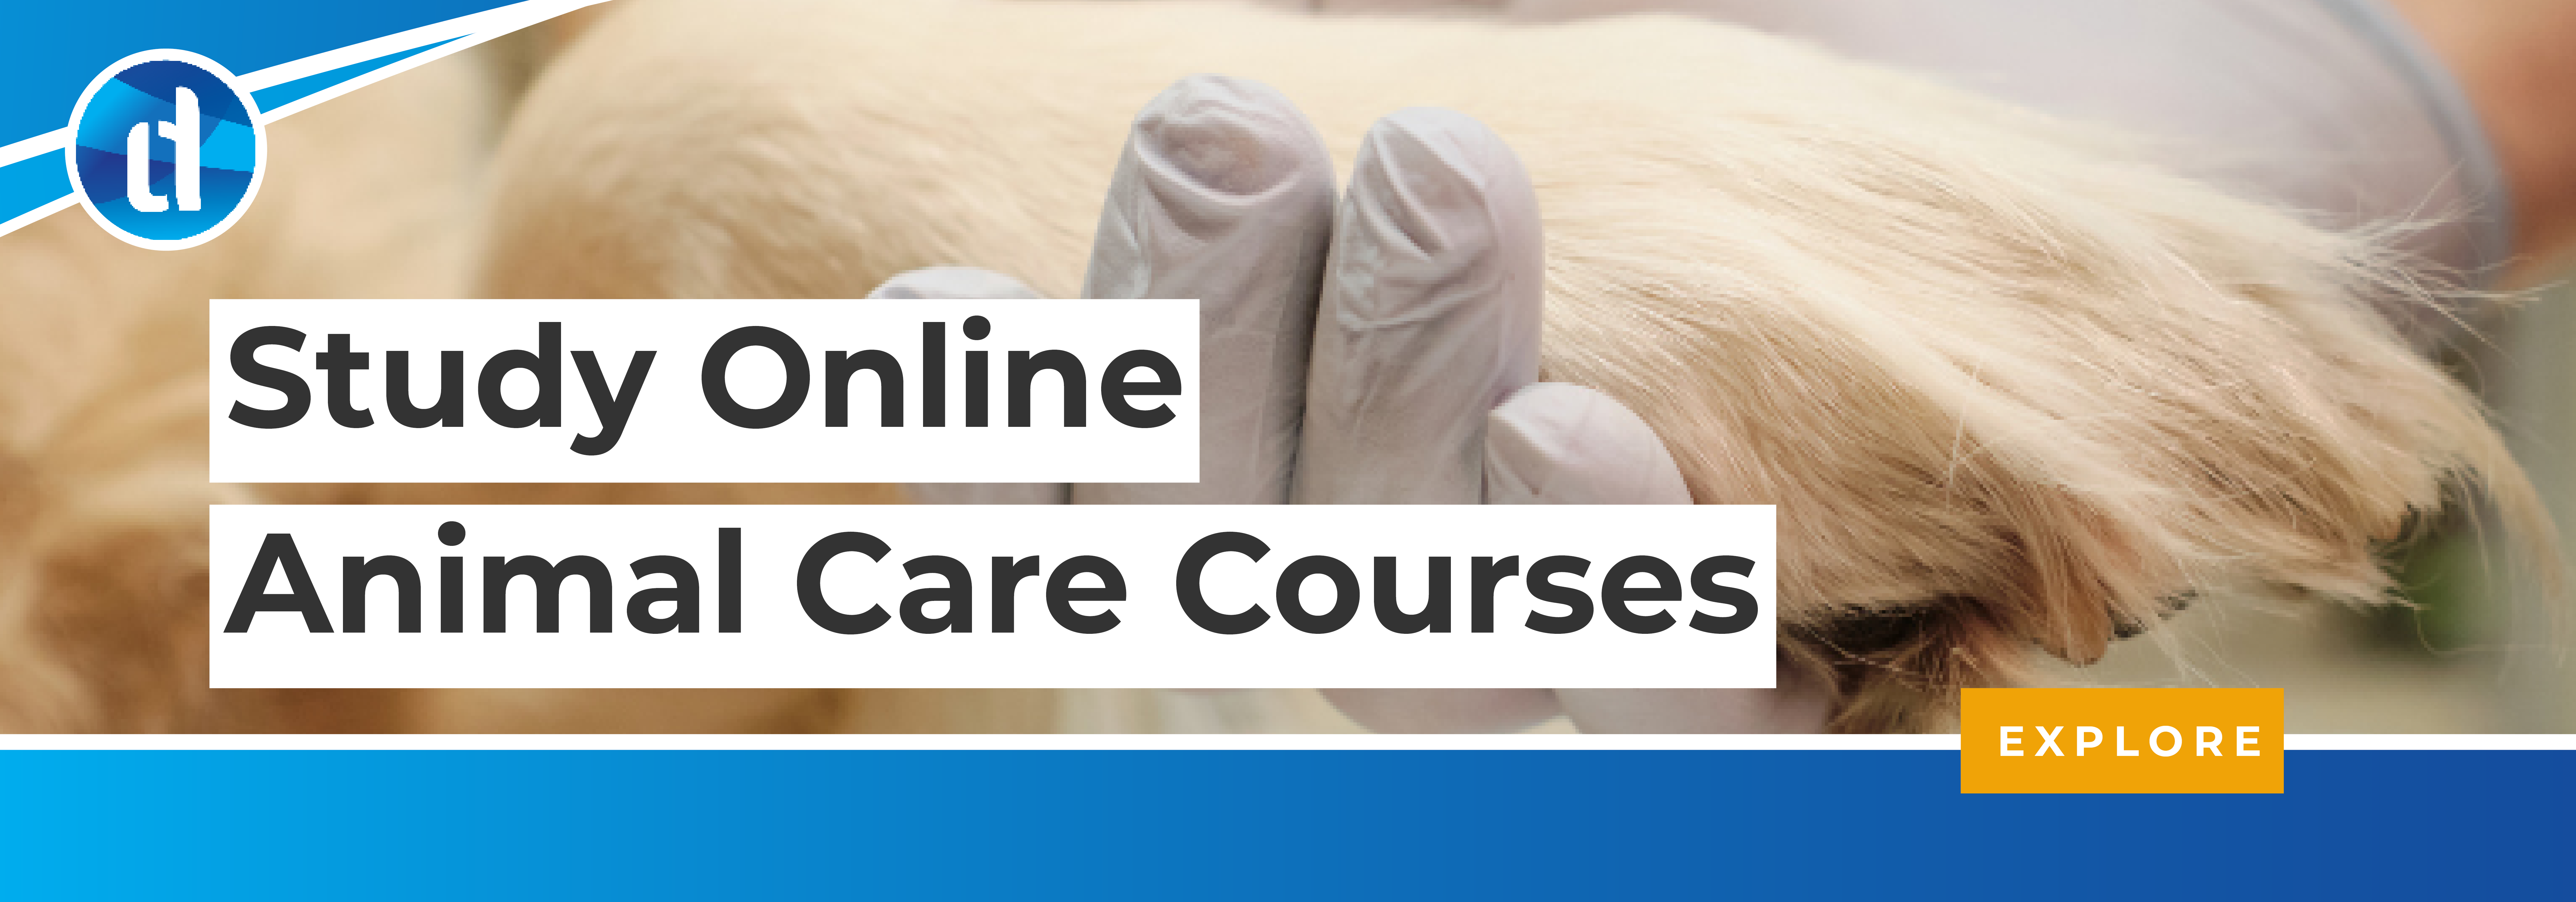 learndirect - online animal care courses